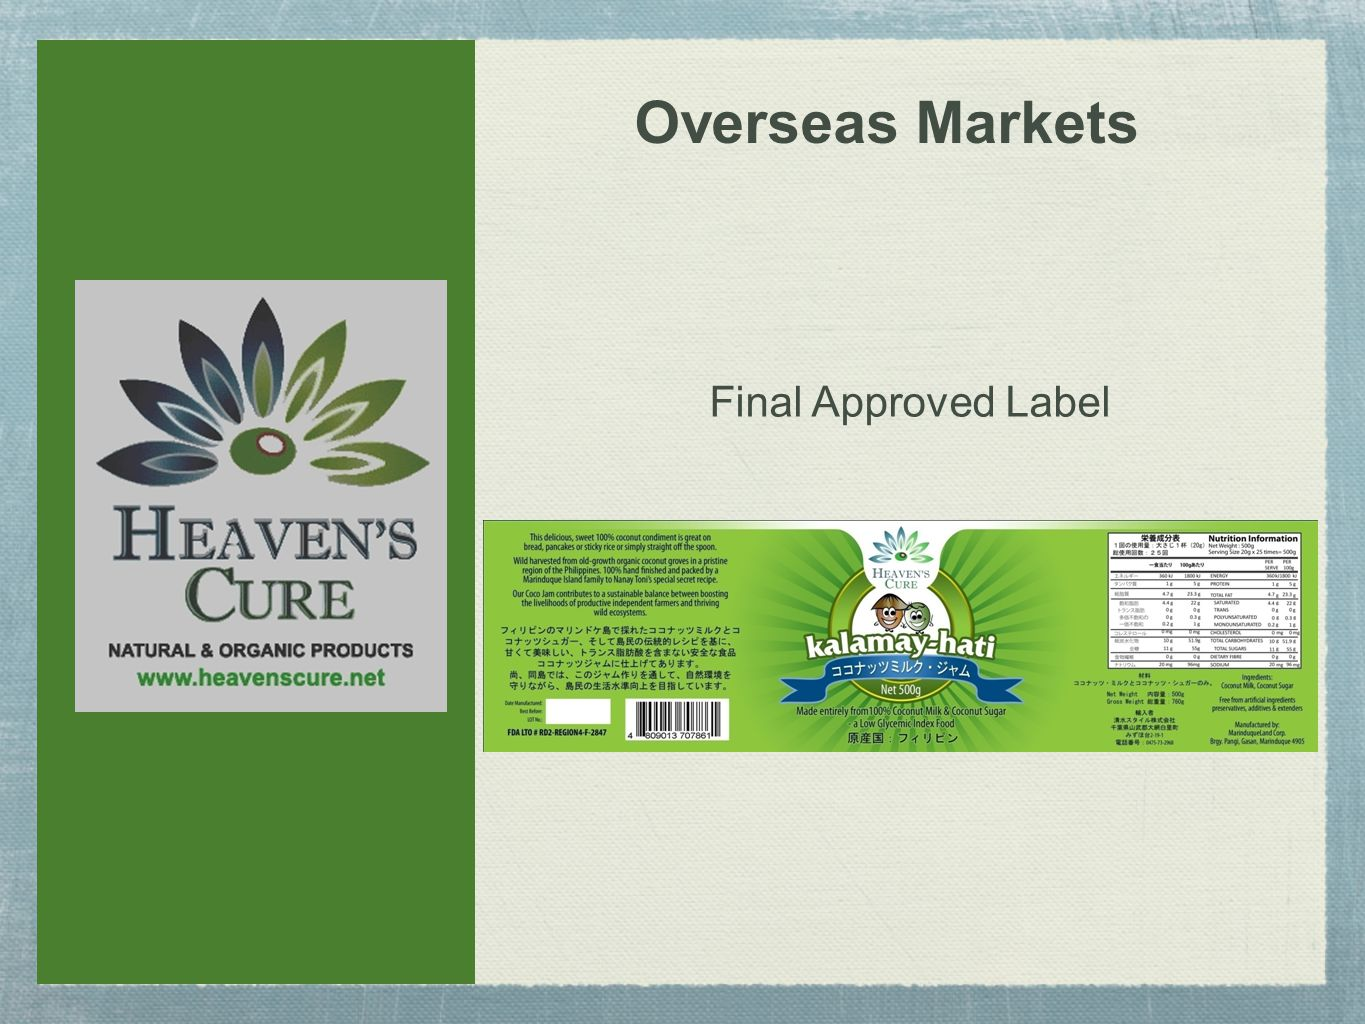 Overseas Markets Final Approved Label